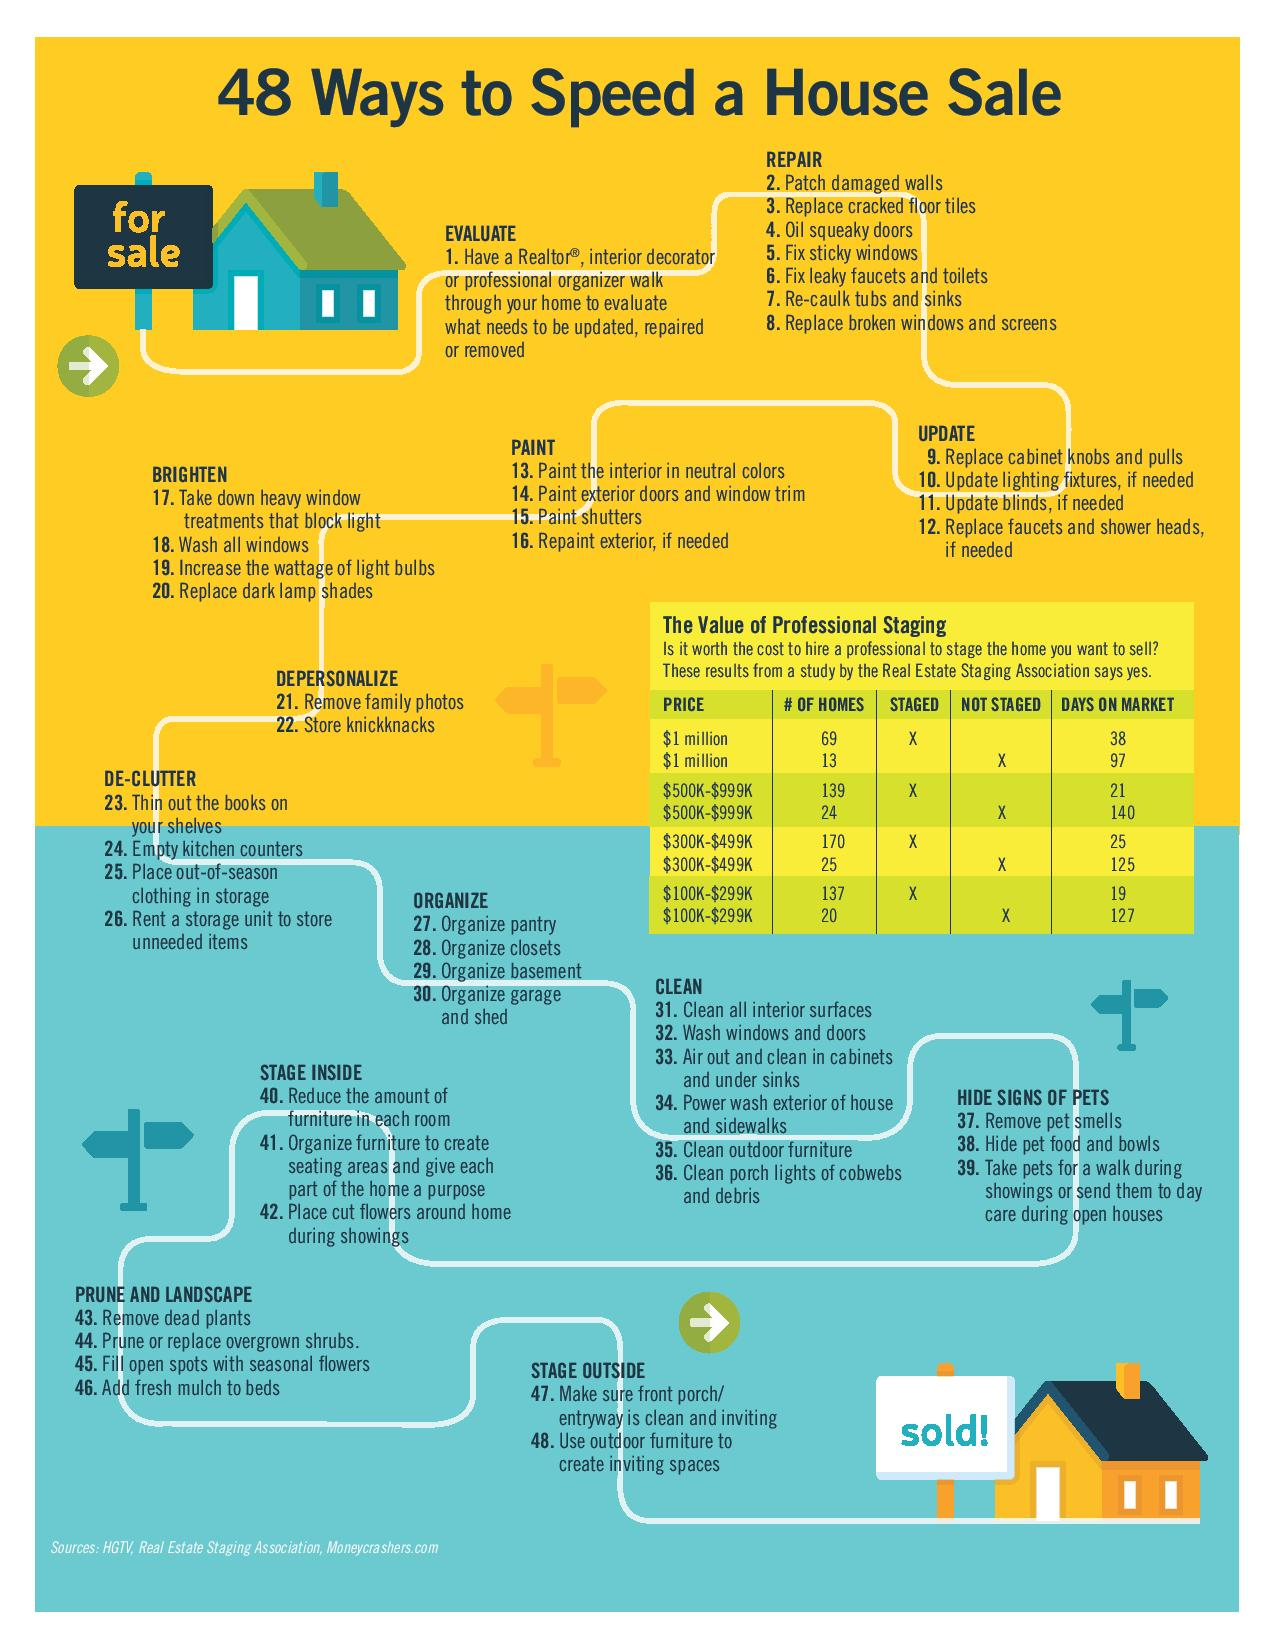 48 Ways To Speed A House Sale